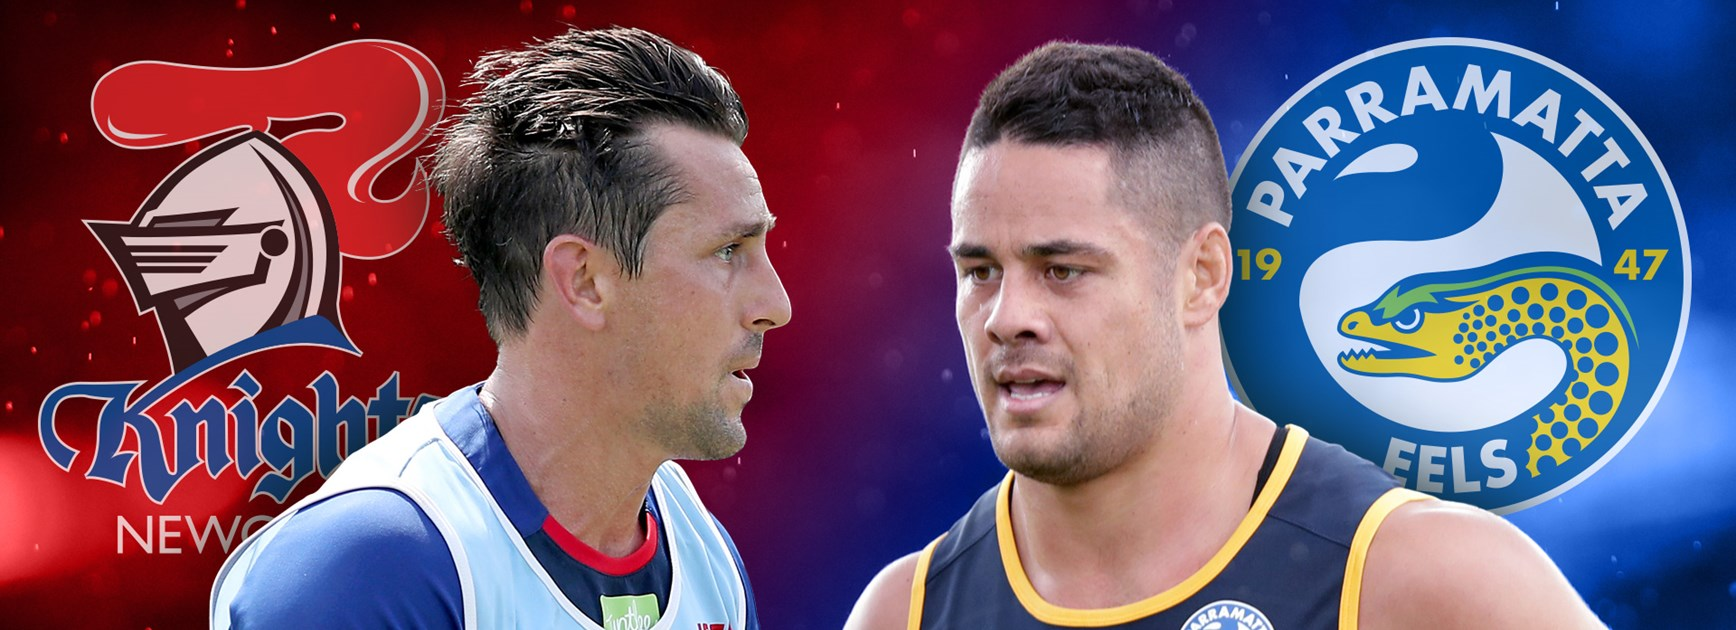 Hayne and Pearce to square off in mouth-watering NRL trial